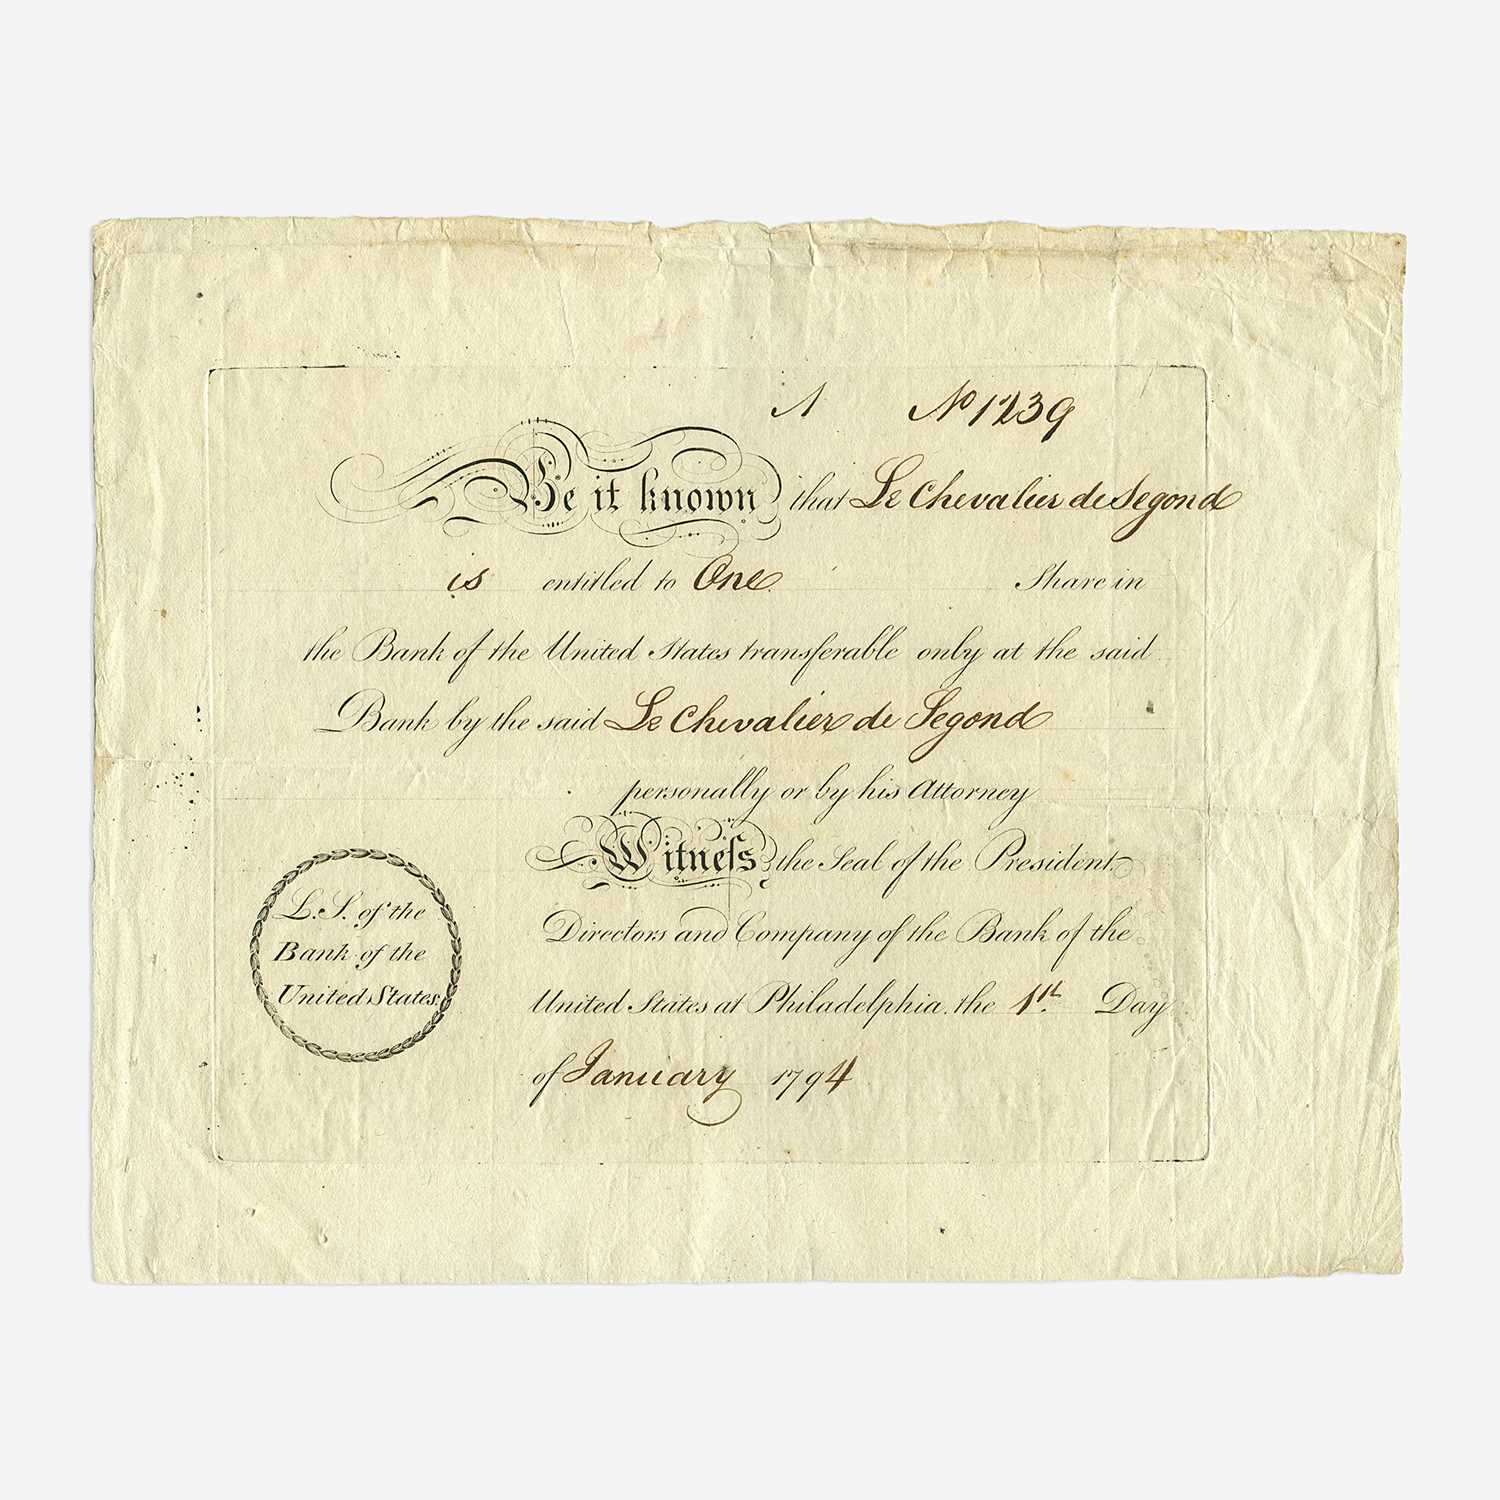 Lot 33 - [Hamilton, Alexander] [First Bank of the United States]